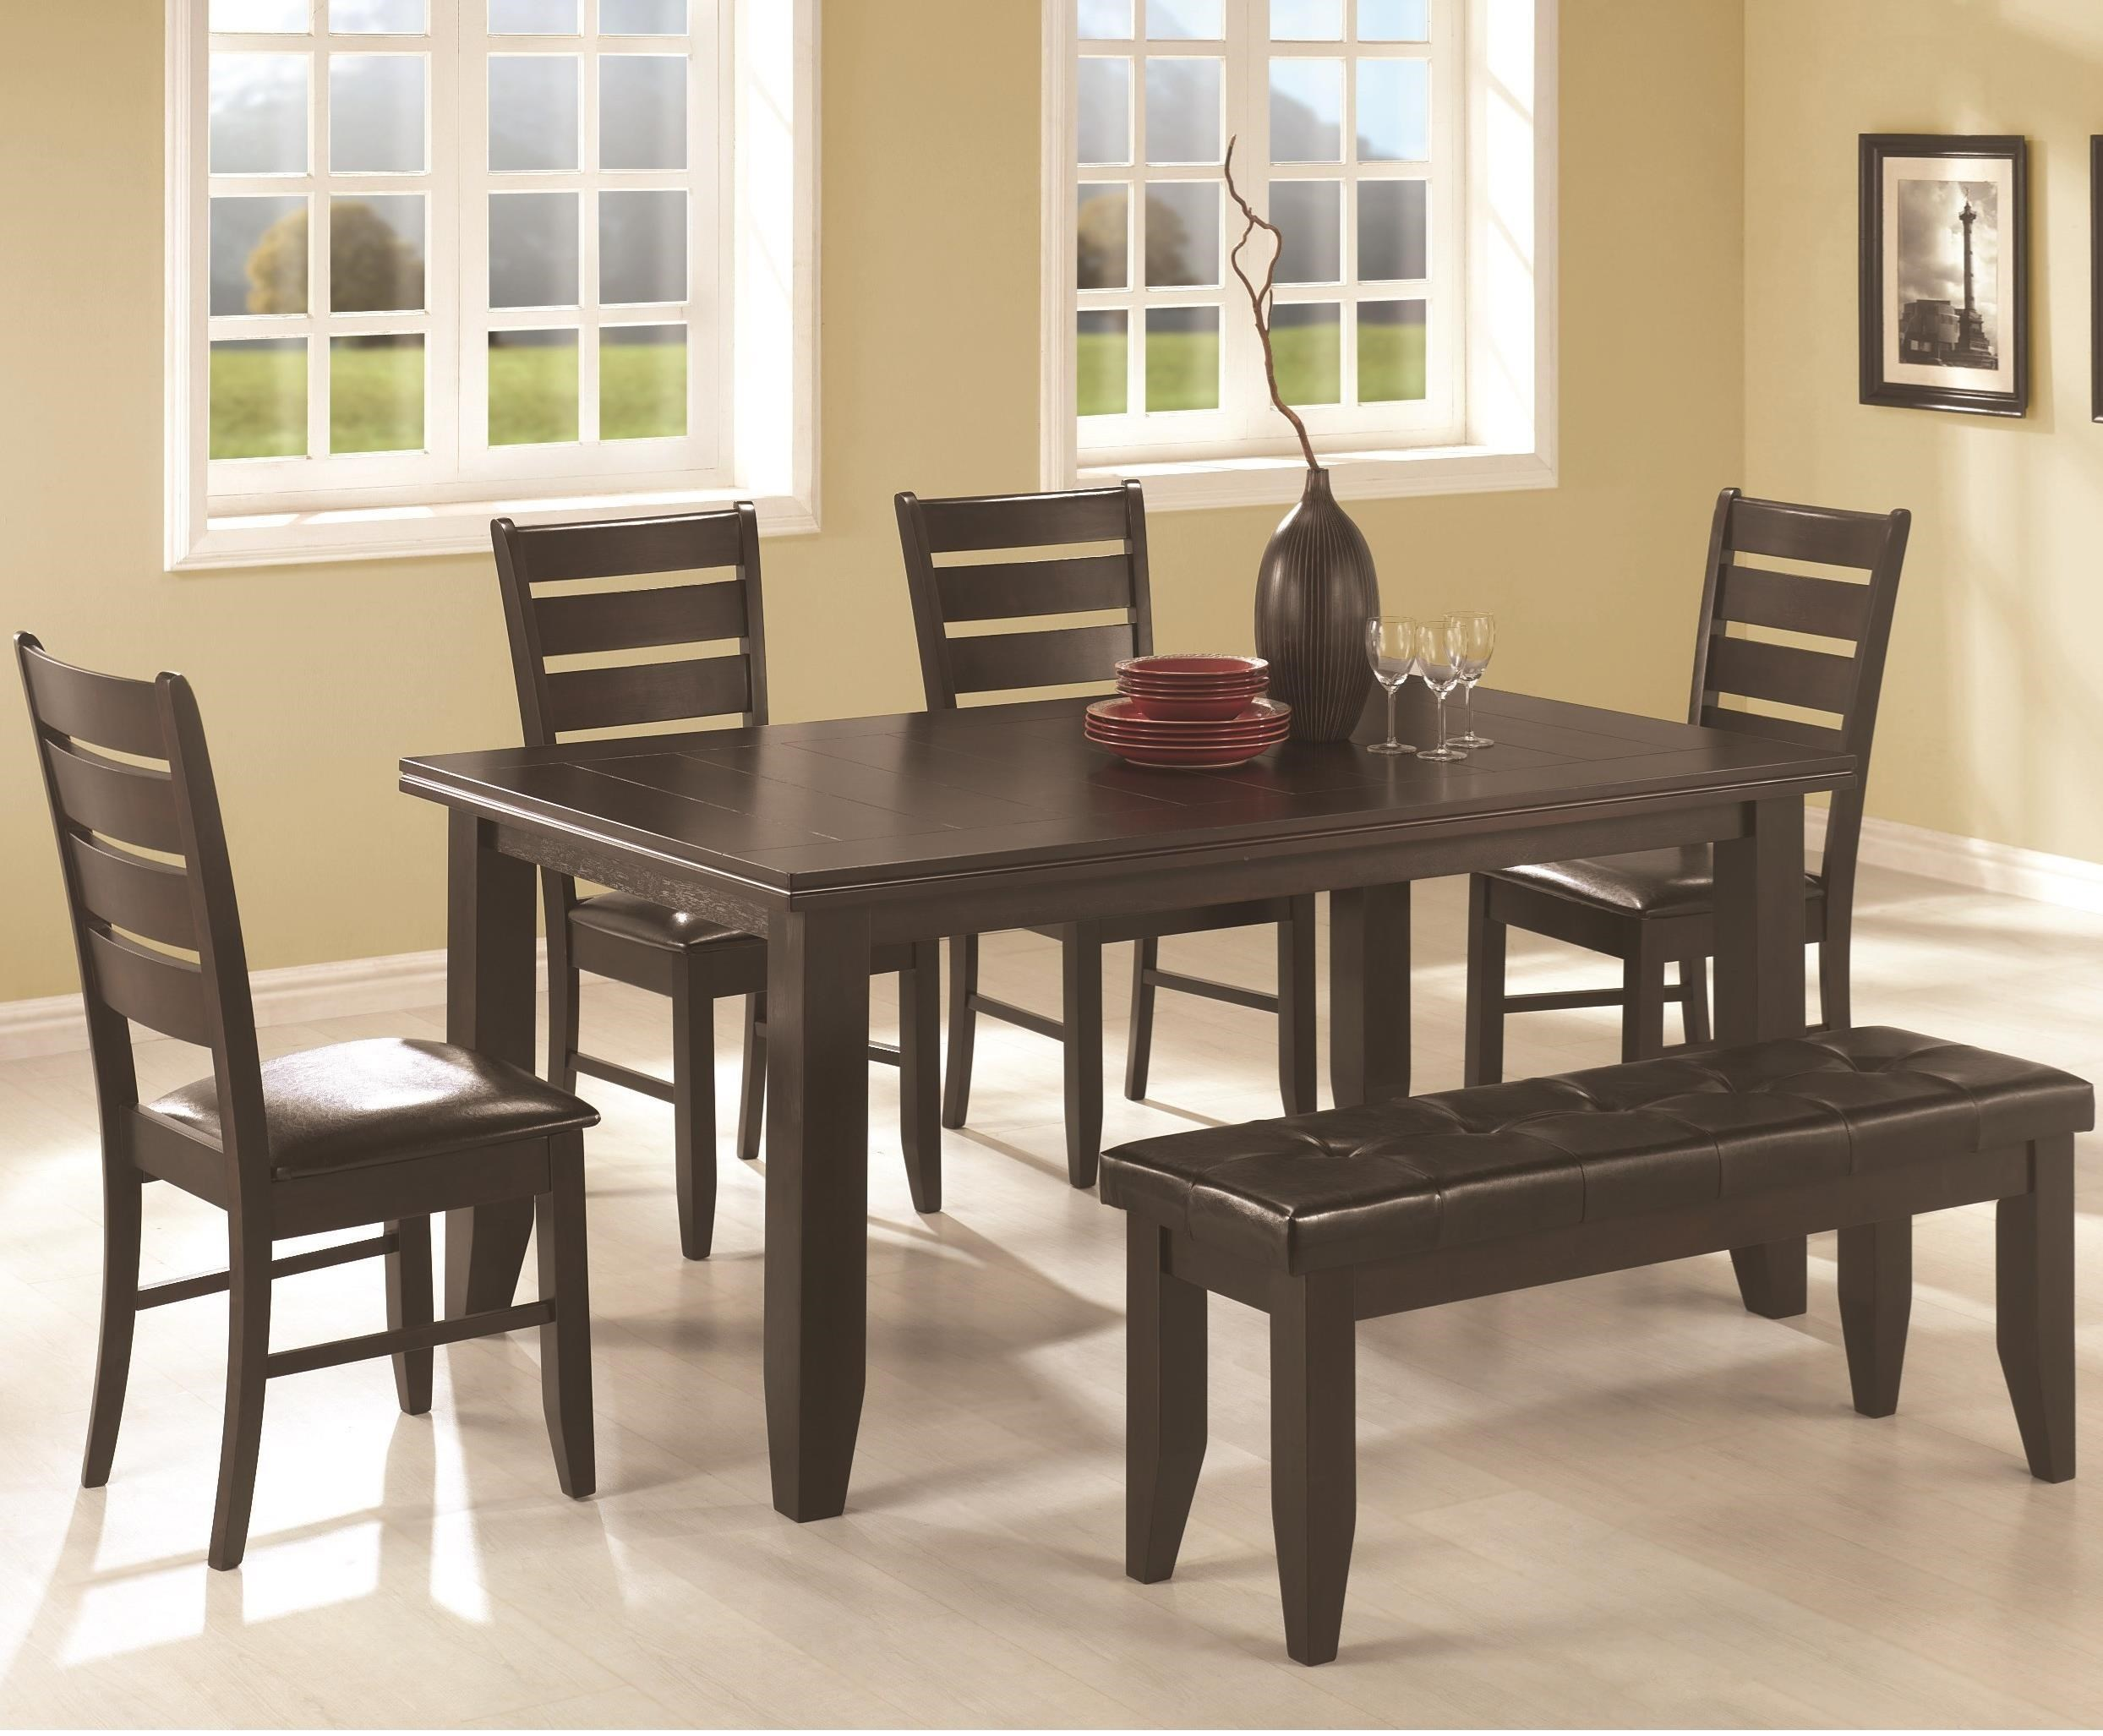 Dalila Casual Dining Set With Bench By Coaster